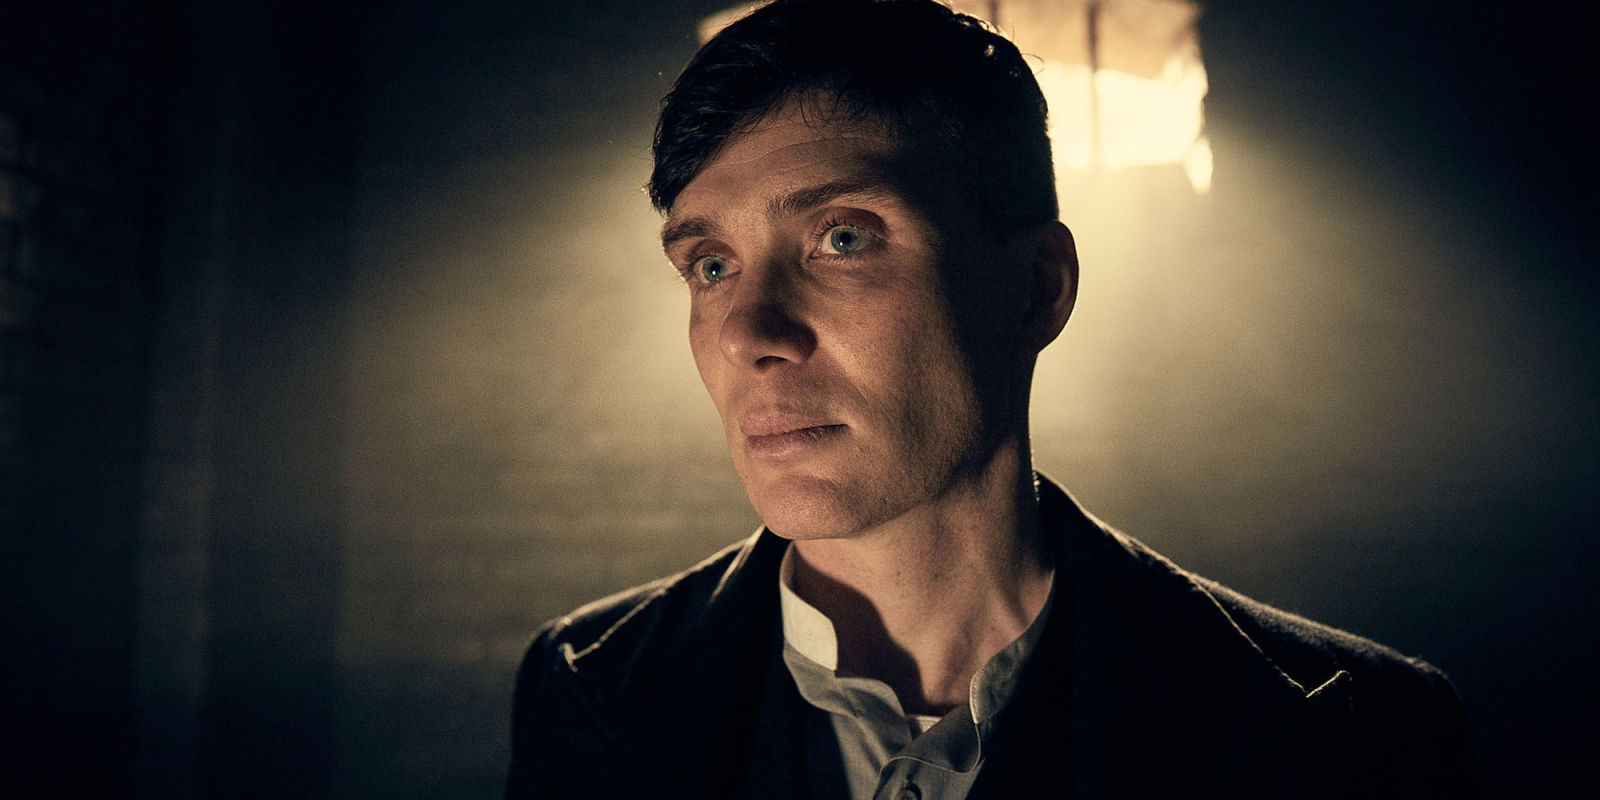 Peaky Blinders: Cillian Murphy is armed and ready in first look at season 4